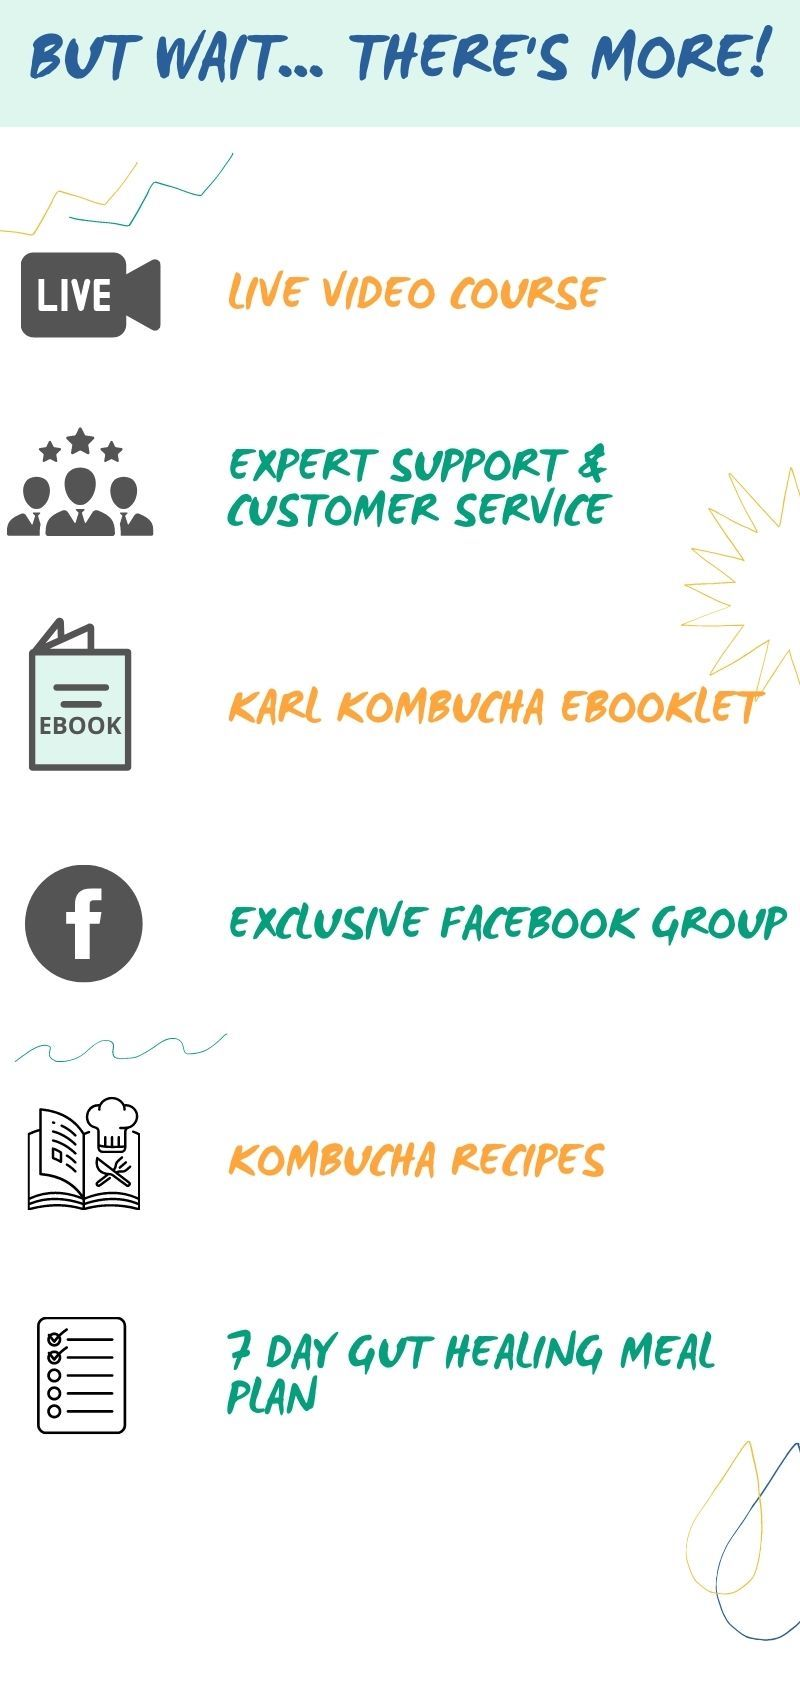 Karl Kombucha Kit includes, video course, expert support, Kombucha booklet, exclusive facebook group, kombucha recipes and 7 day gut health meal plan